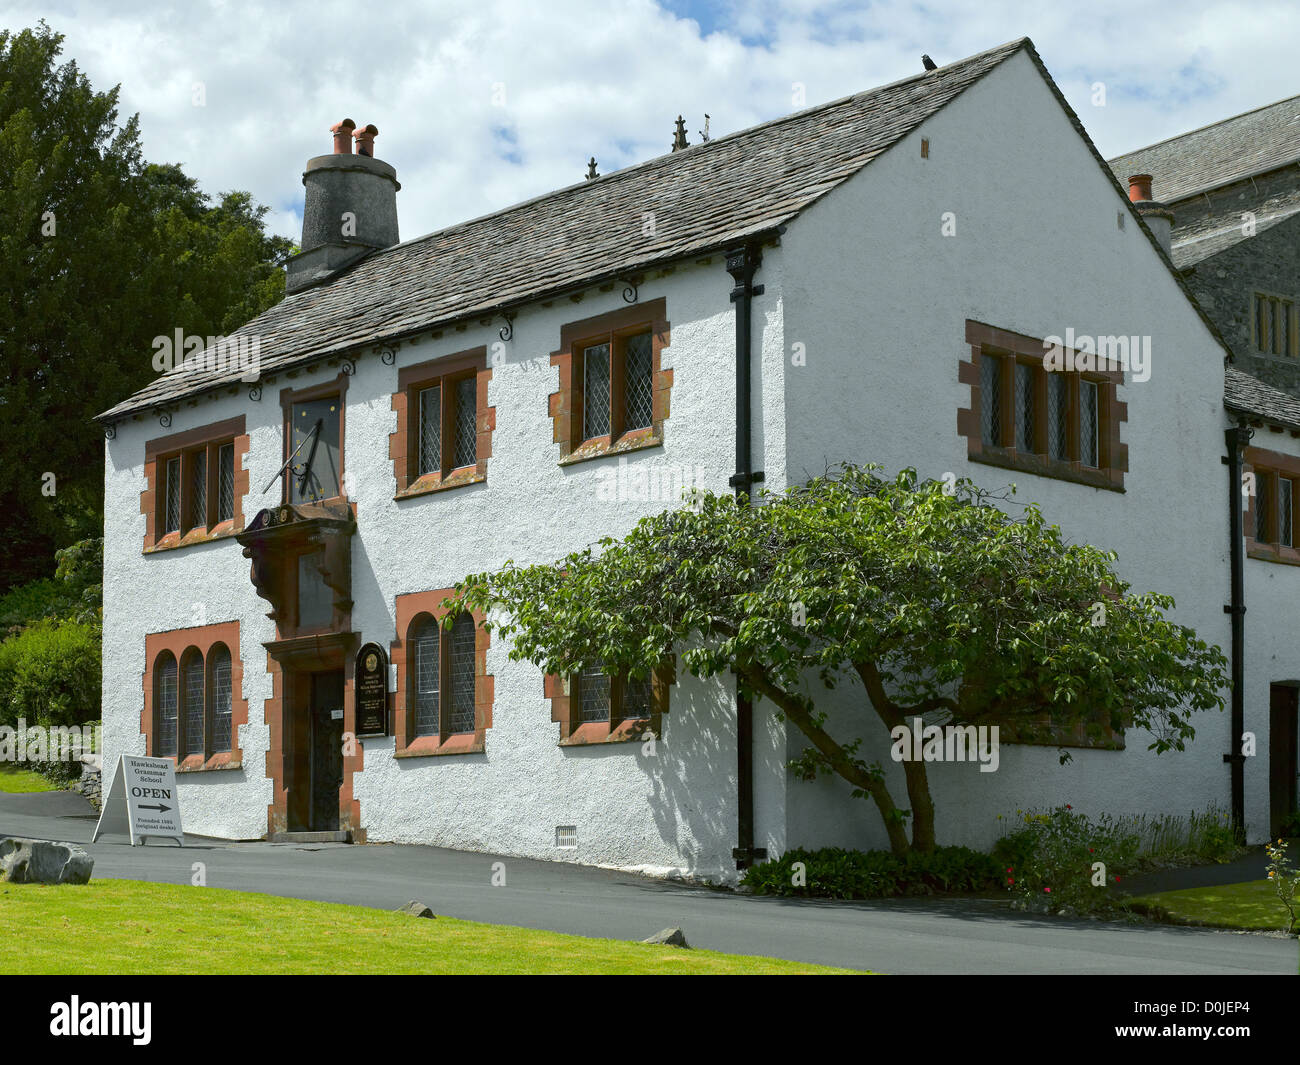 Hawkshead Grammar School which used to be the old grammar school which the poet William Wordsworth attended. - Stock Image